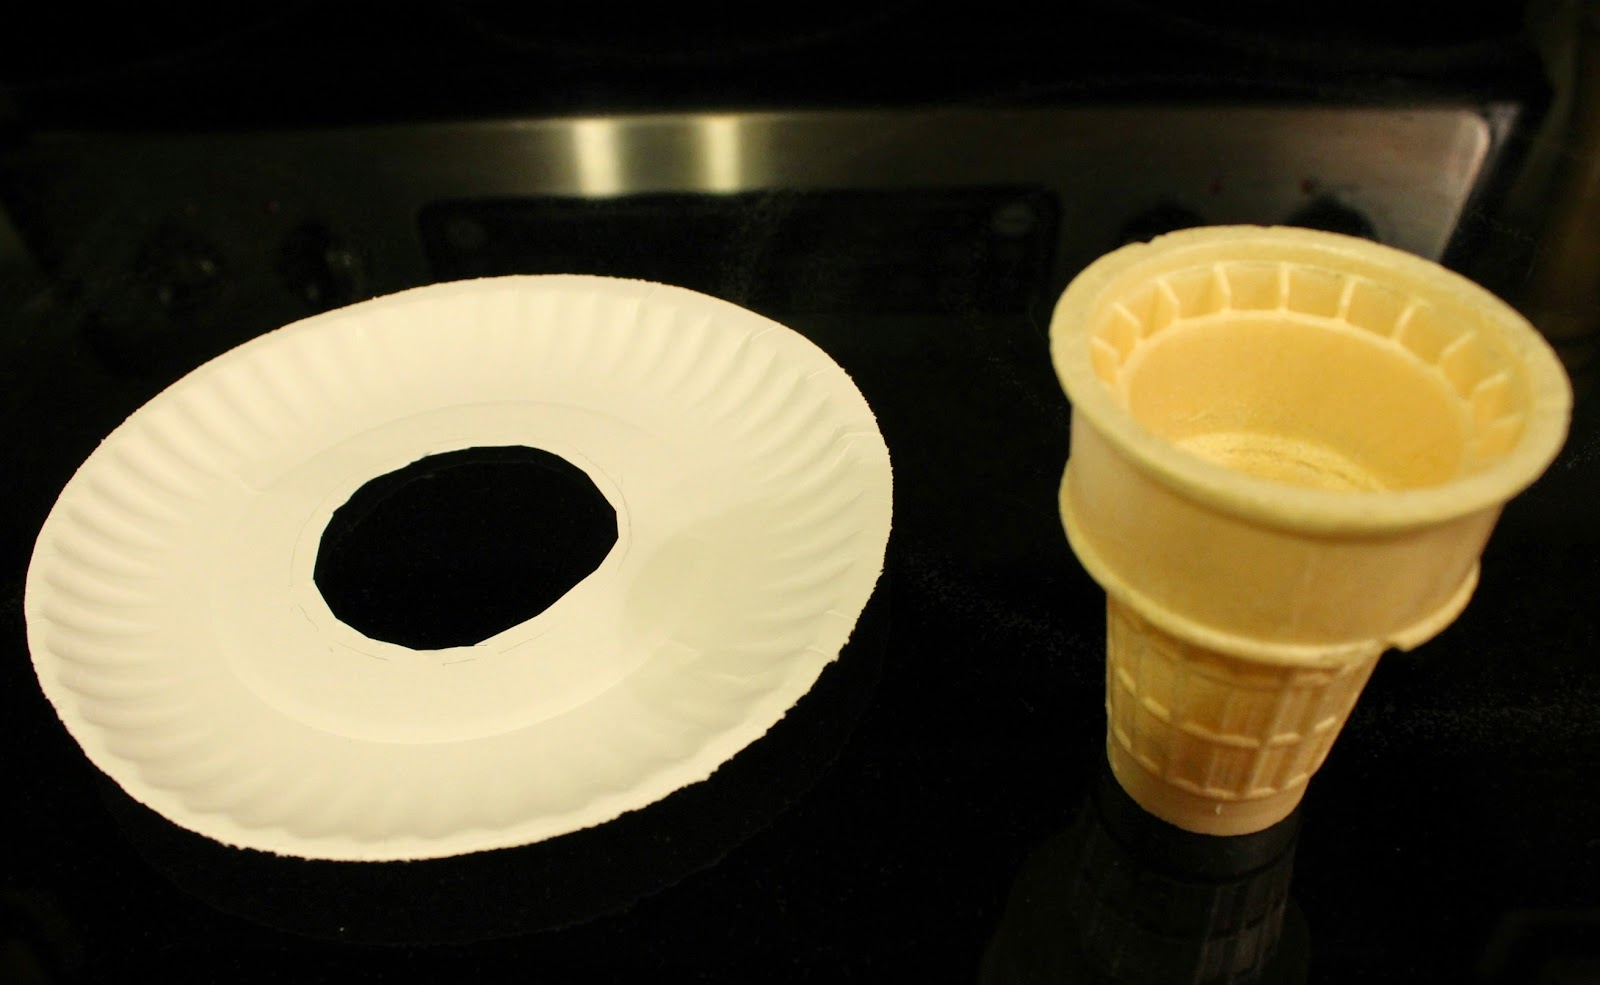 Paper plate drip tray and an ice cream cone beside it